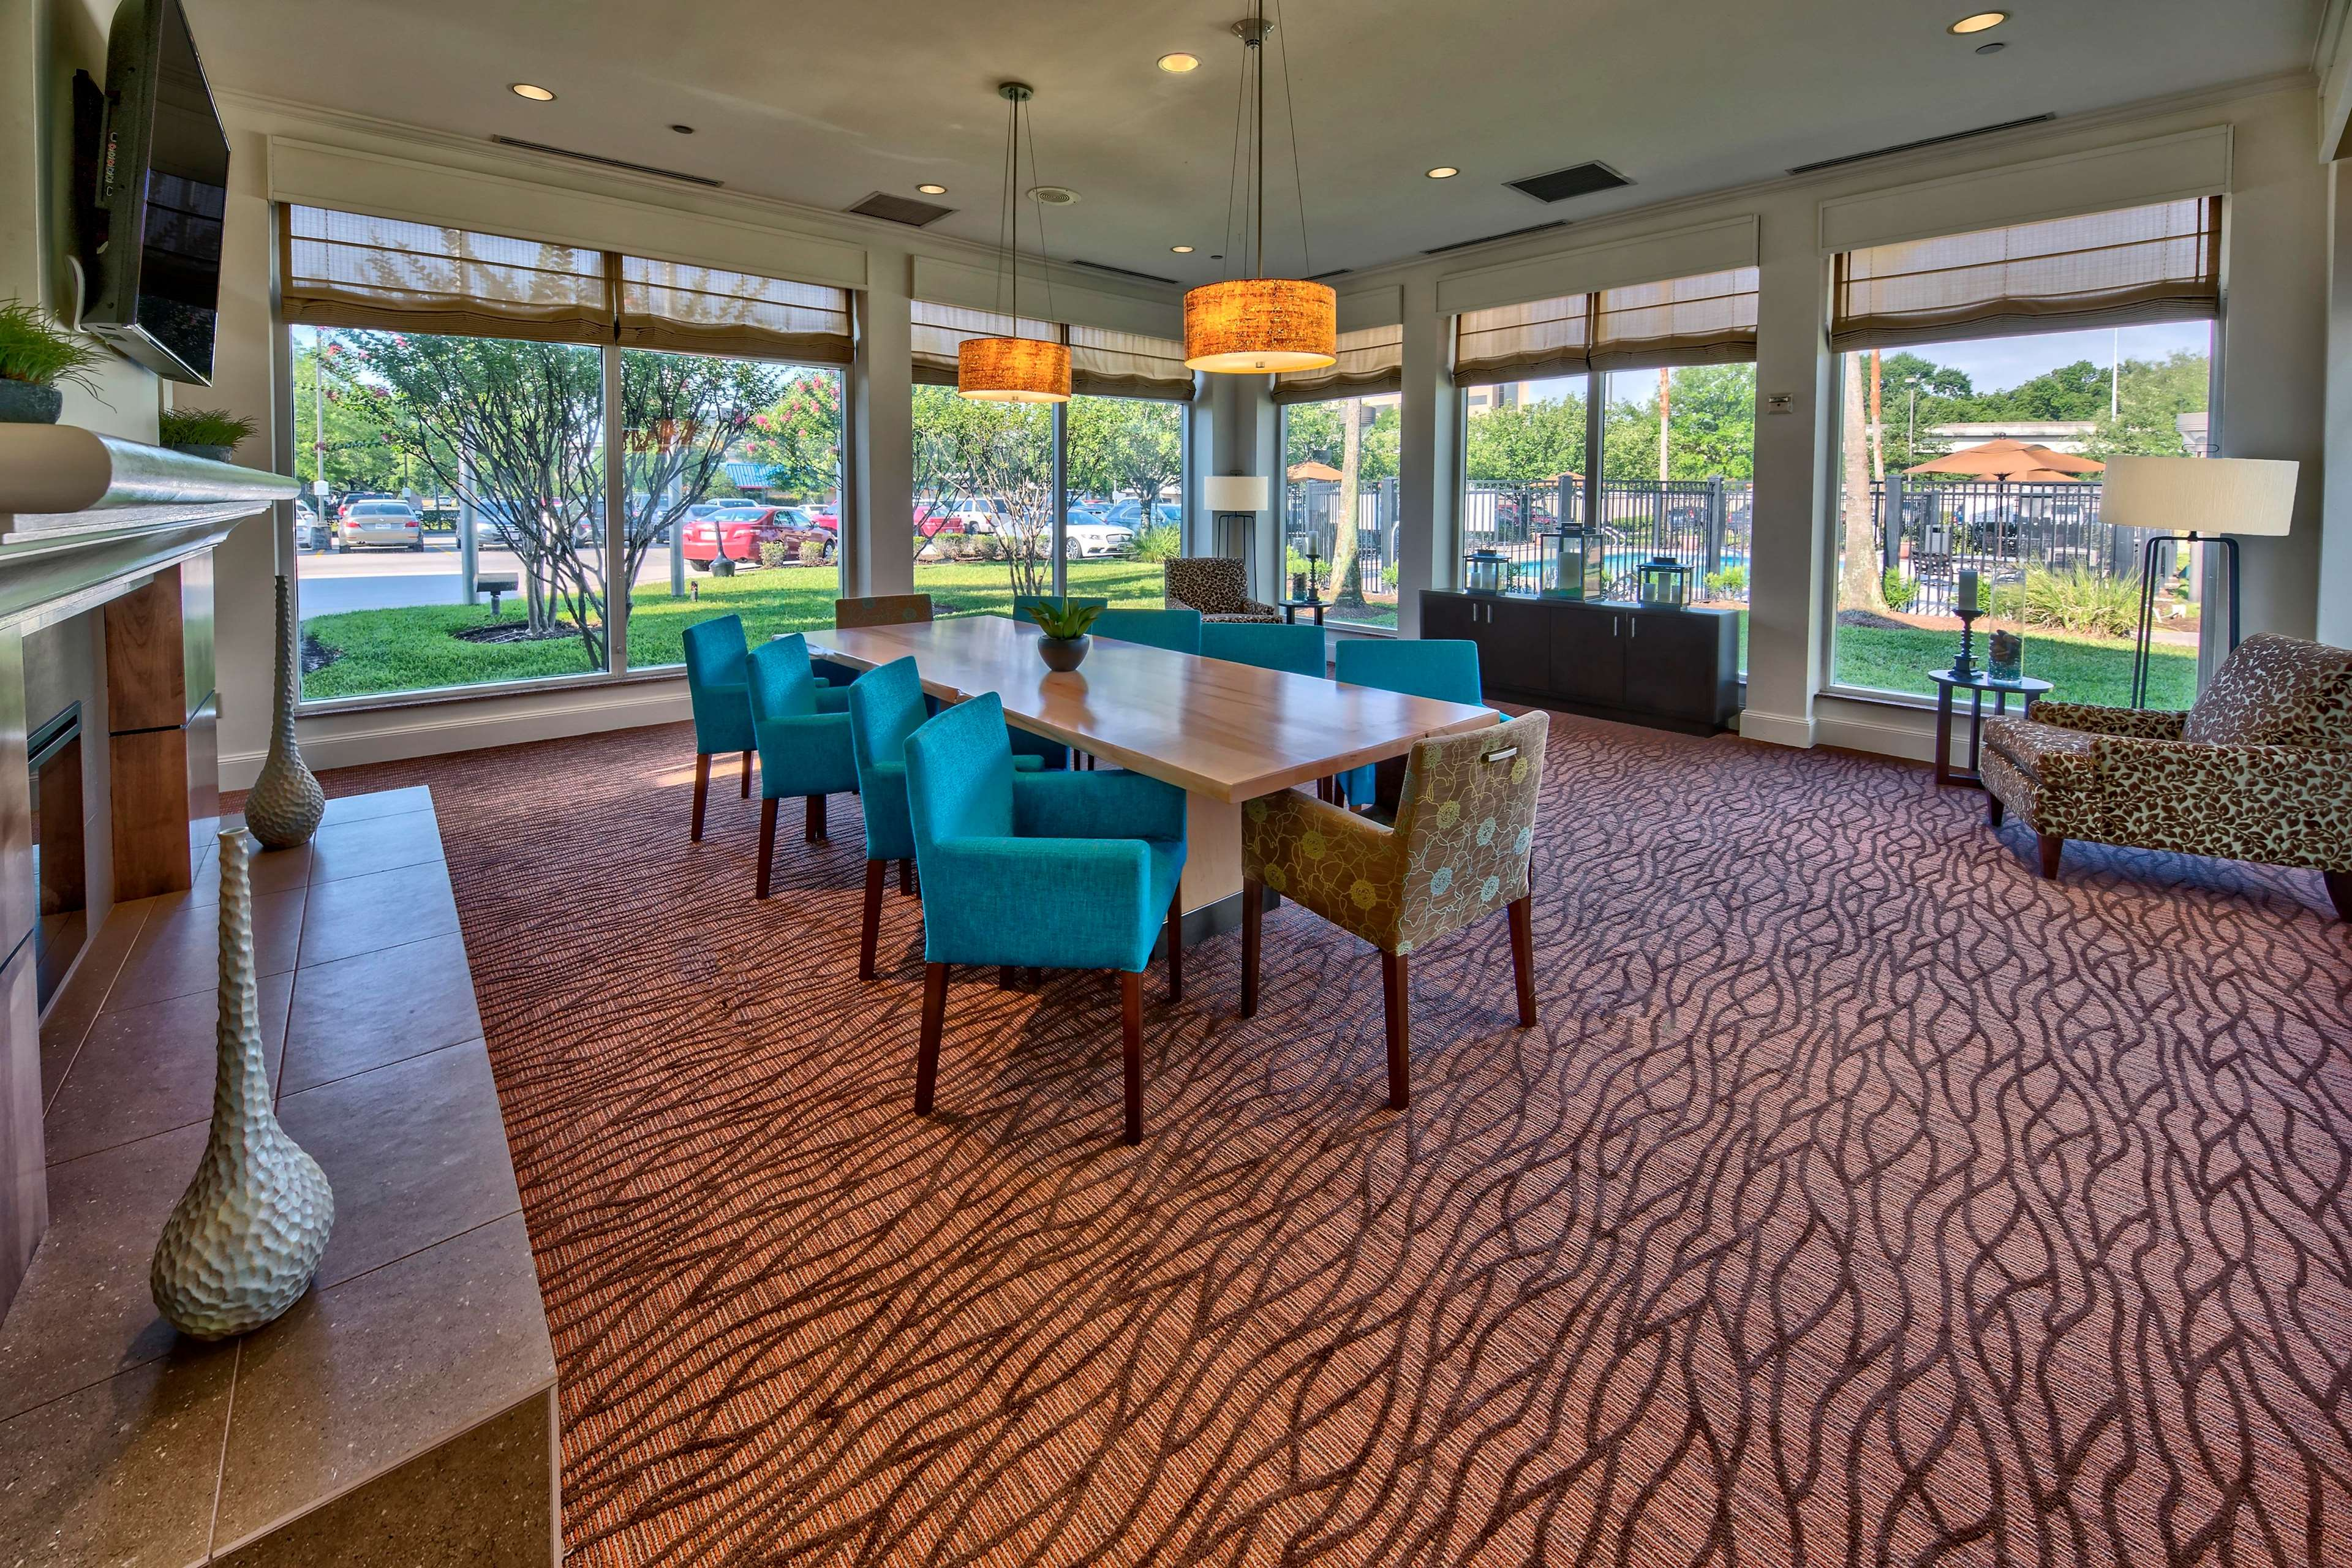 Hilton Garden Inn Houston/Bush Intercontinental Airport image 16